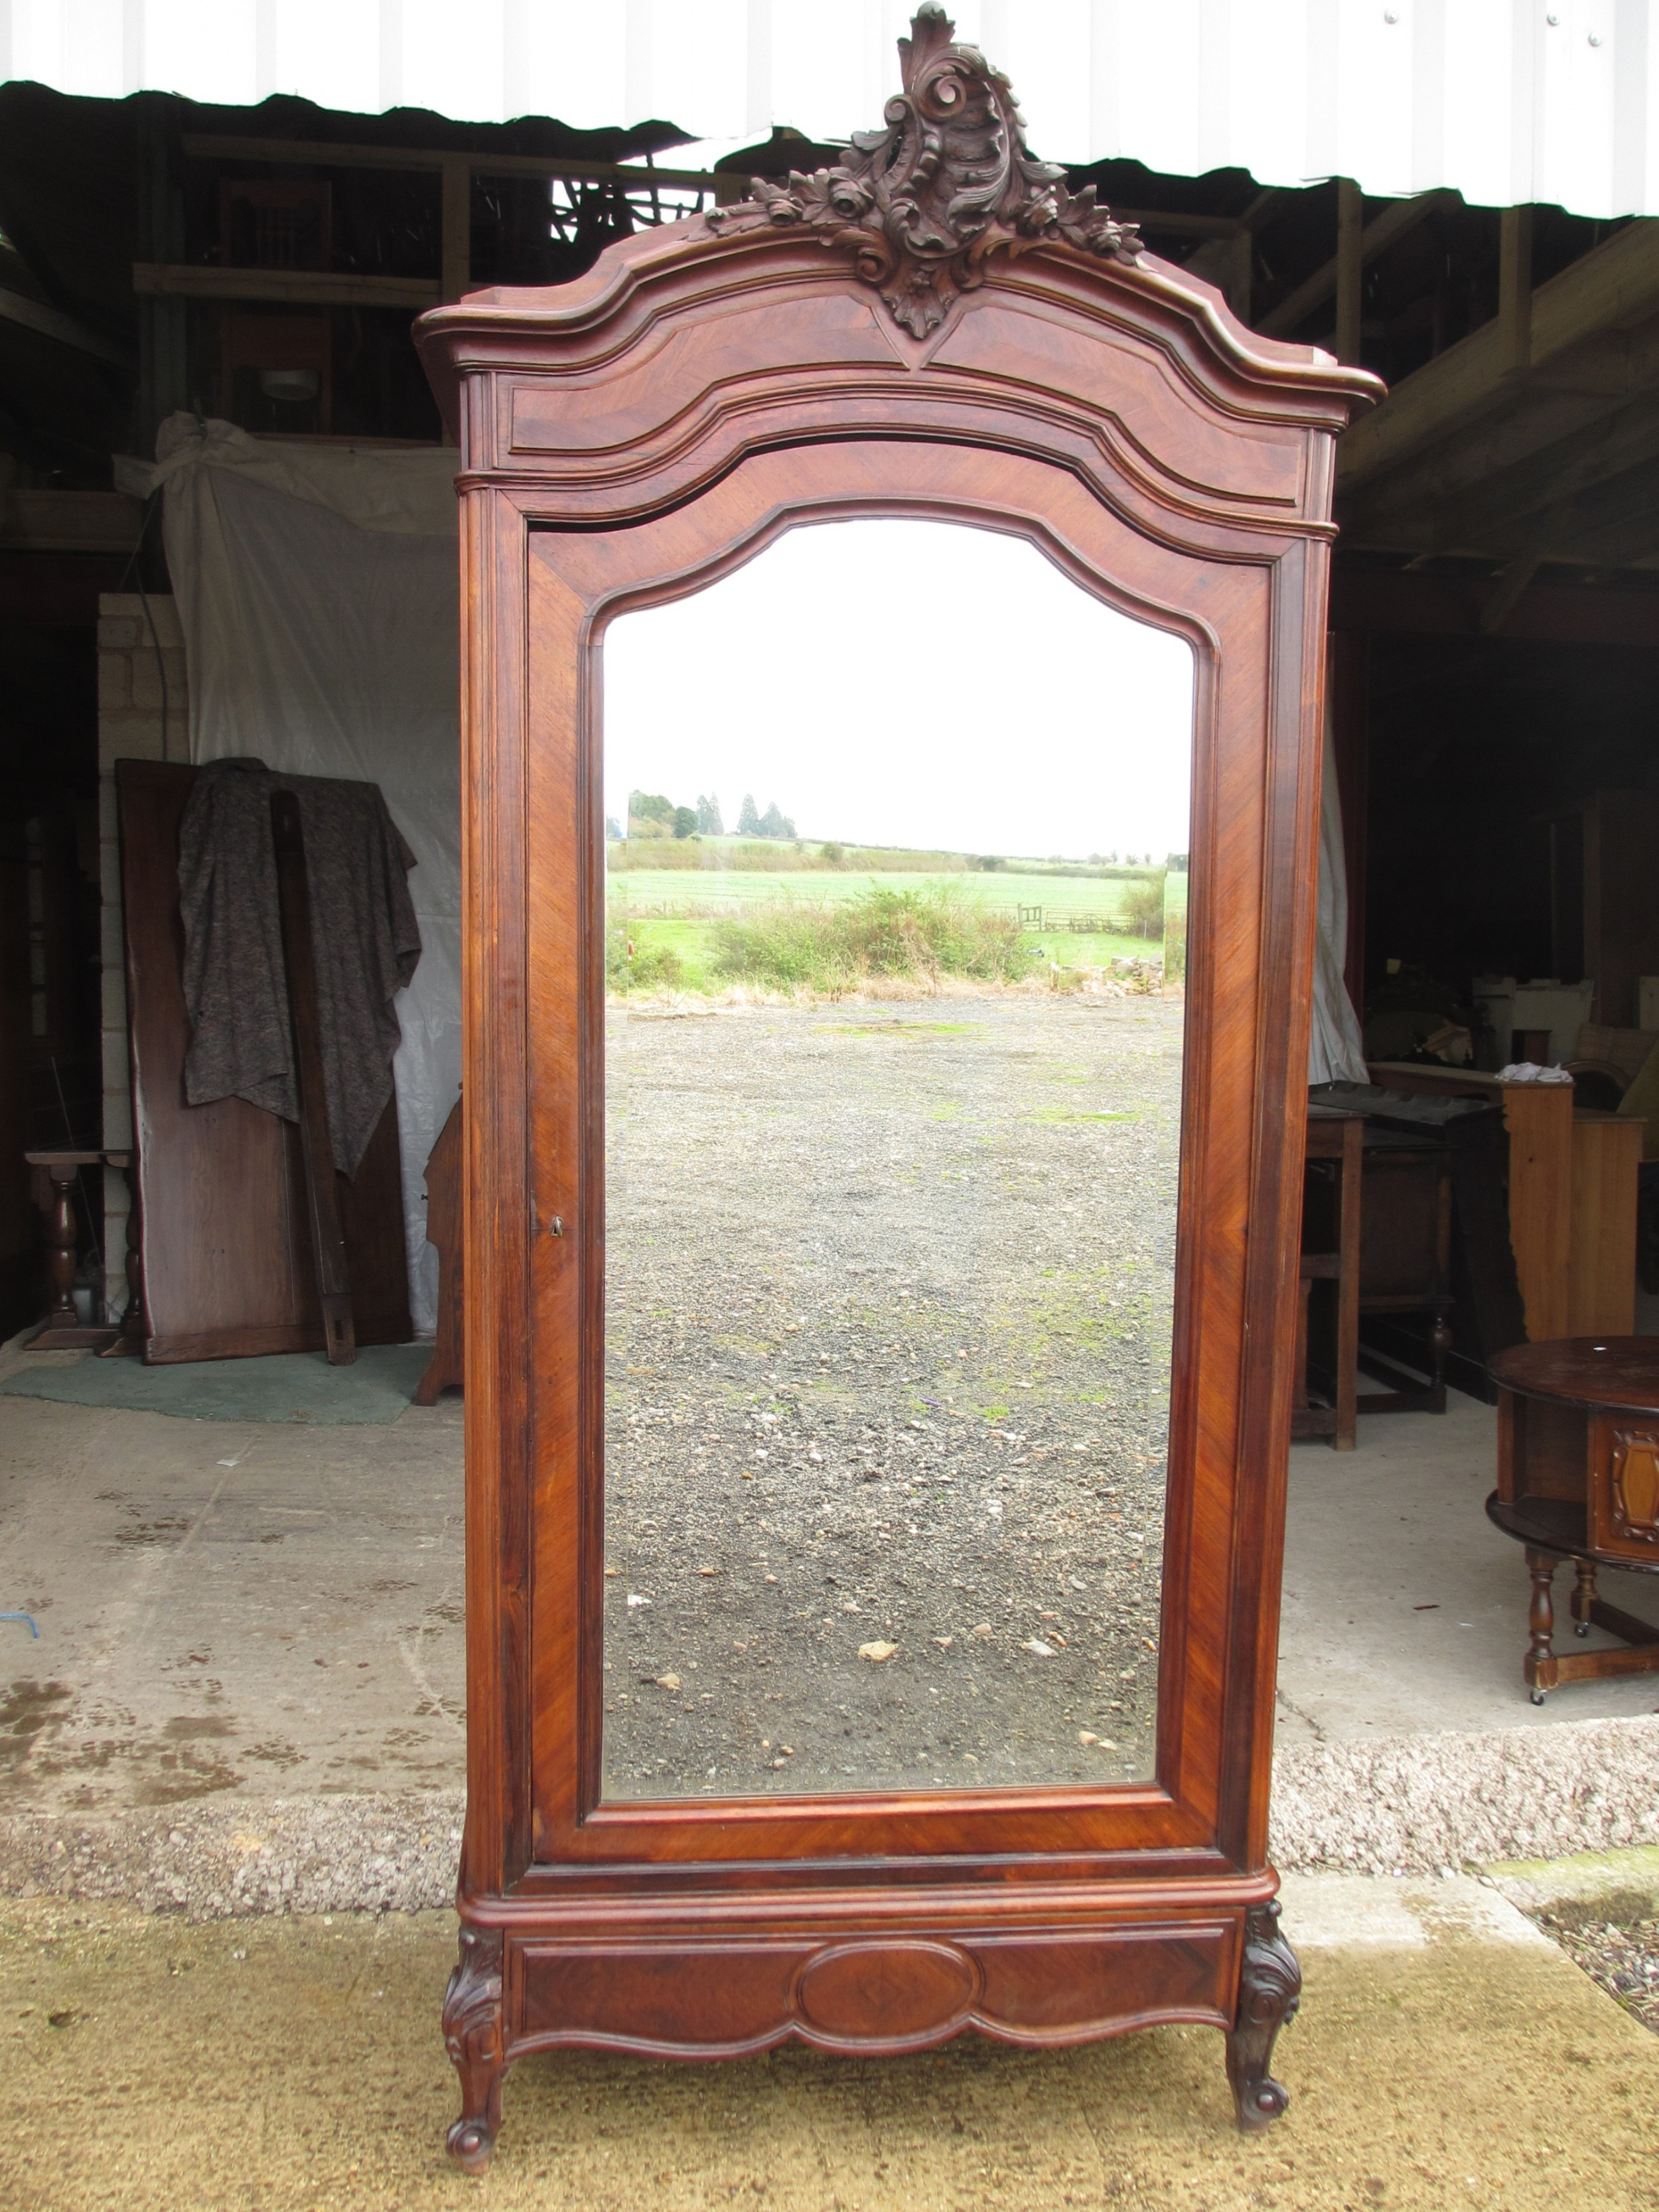 superb 19th century french carved rosewood mirror door armoire wardrobe